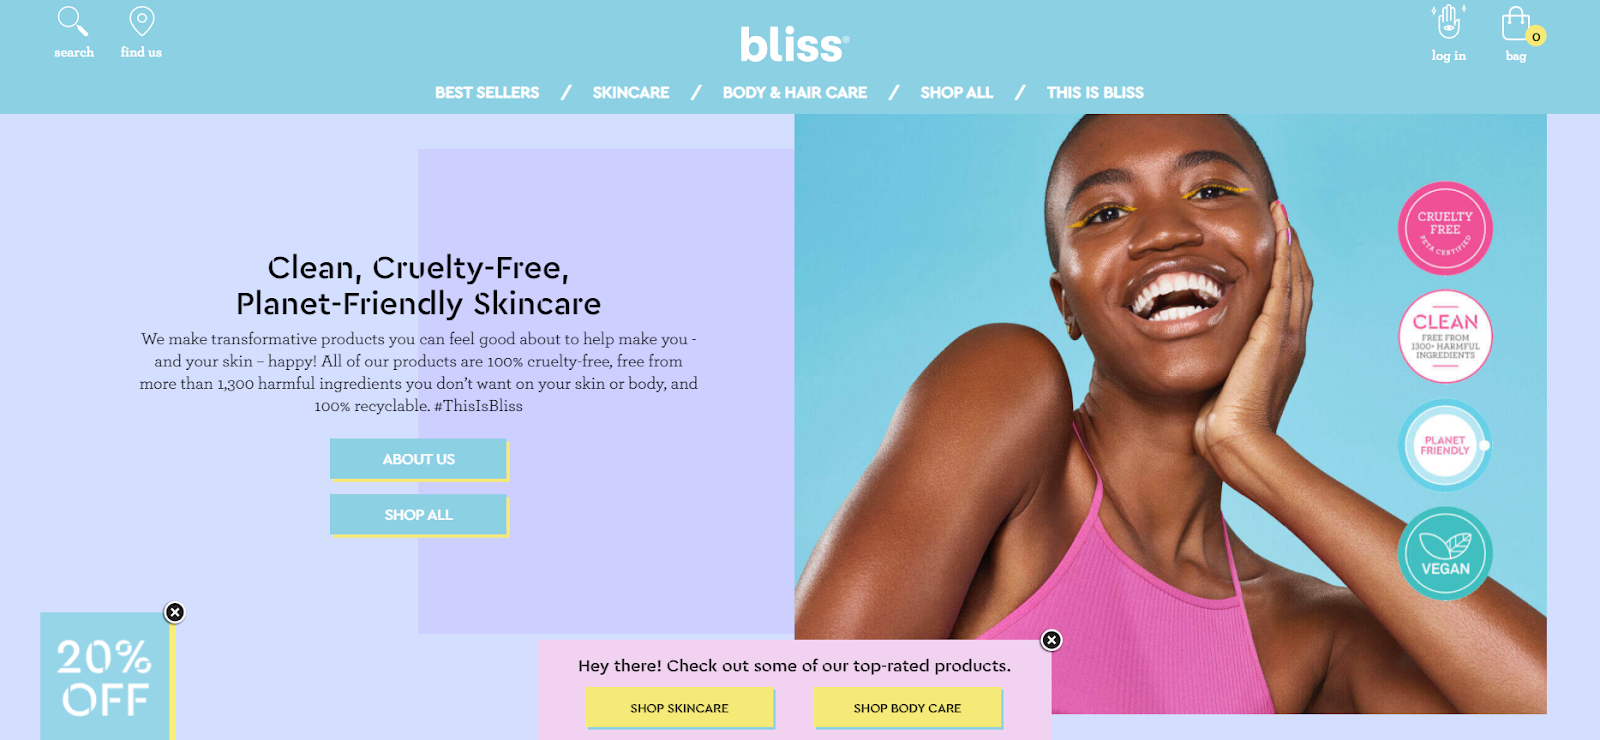 A retail website homepage